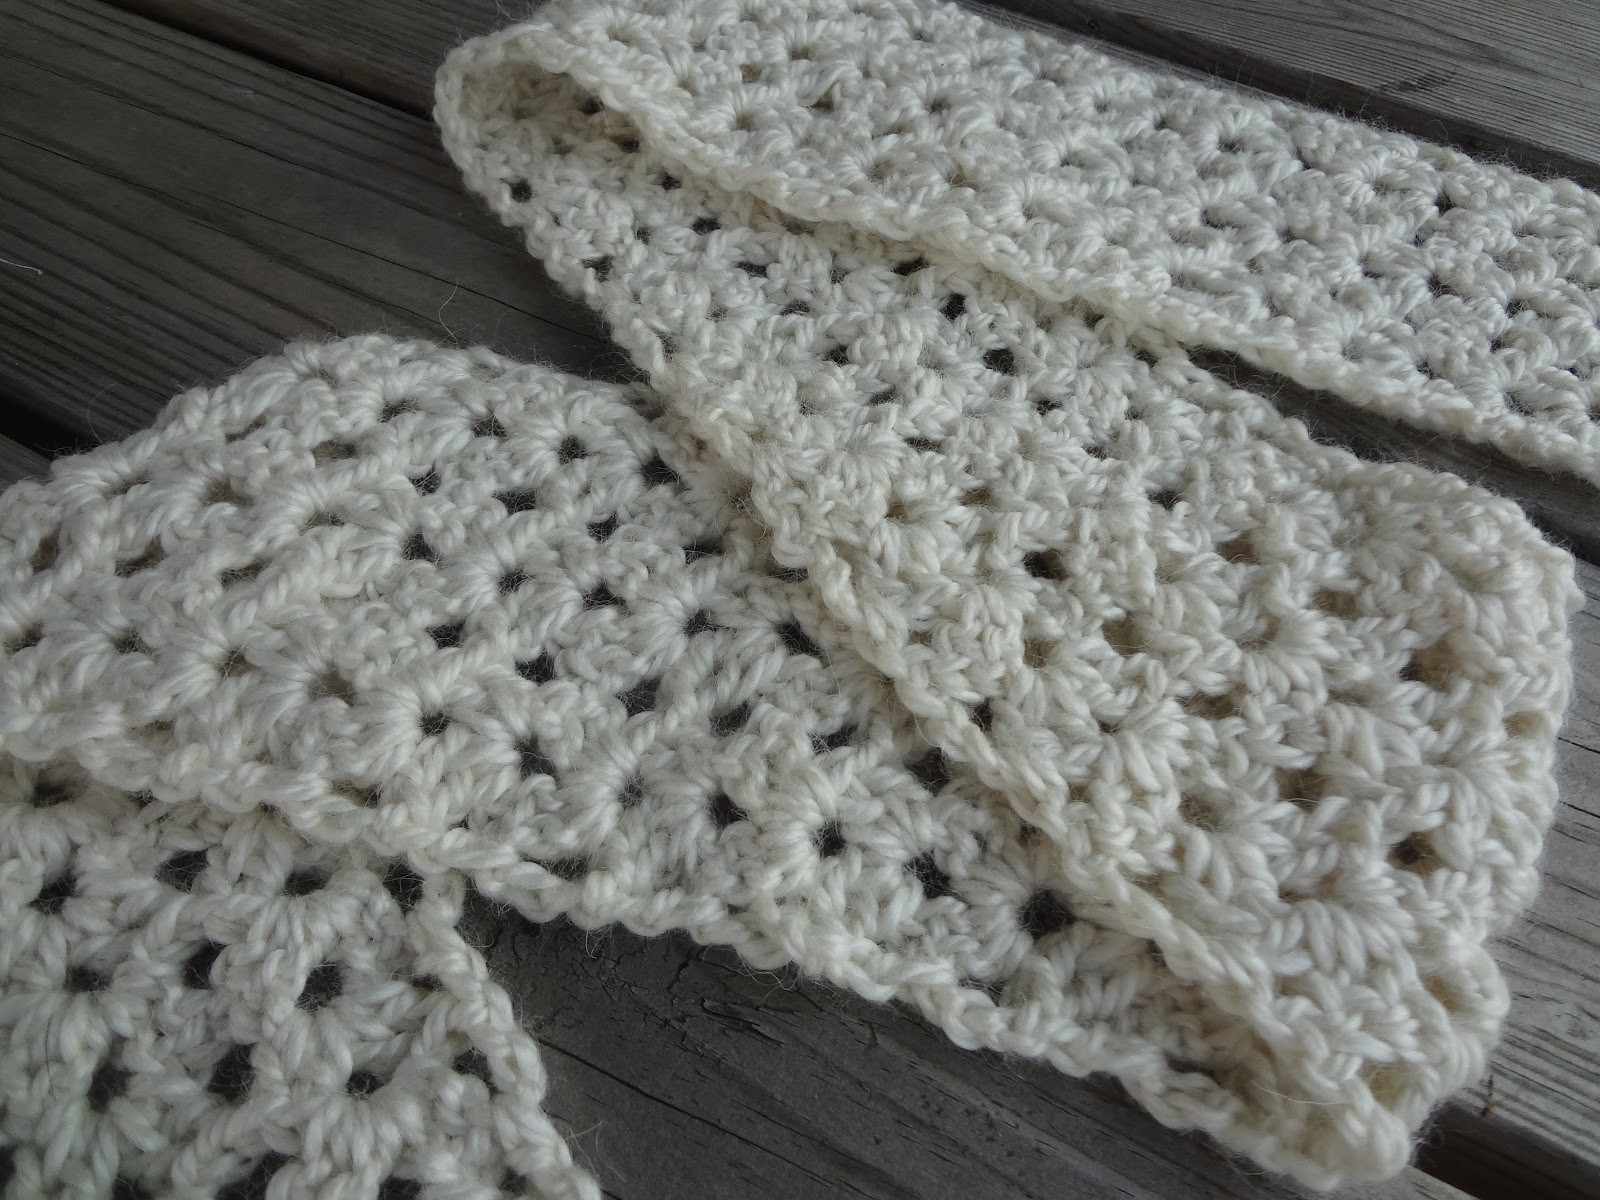 Lovely Crochet Scarf Patterns for Beginners Free Crochet Stitches for Beginners Of Amazing 46 Models Crochet Stitches for Beginners